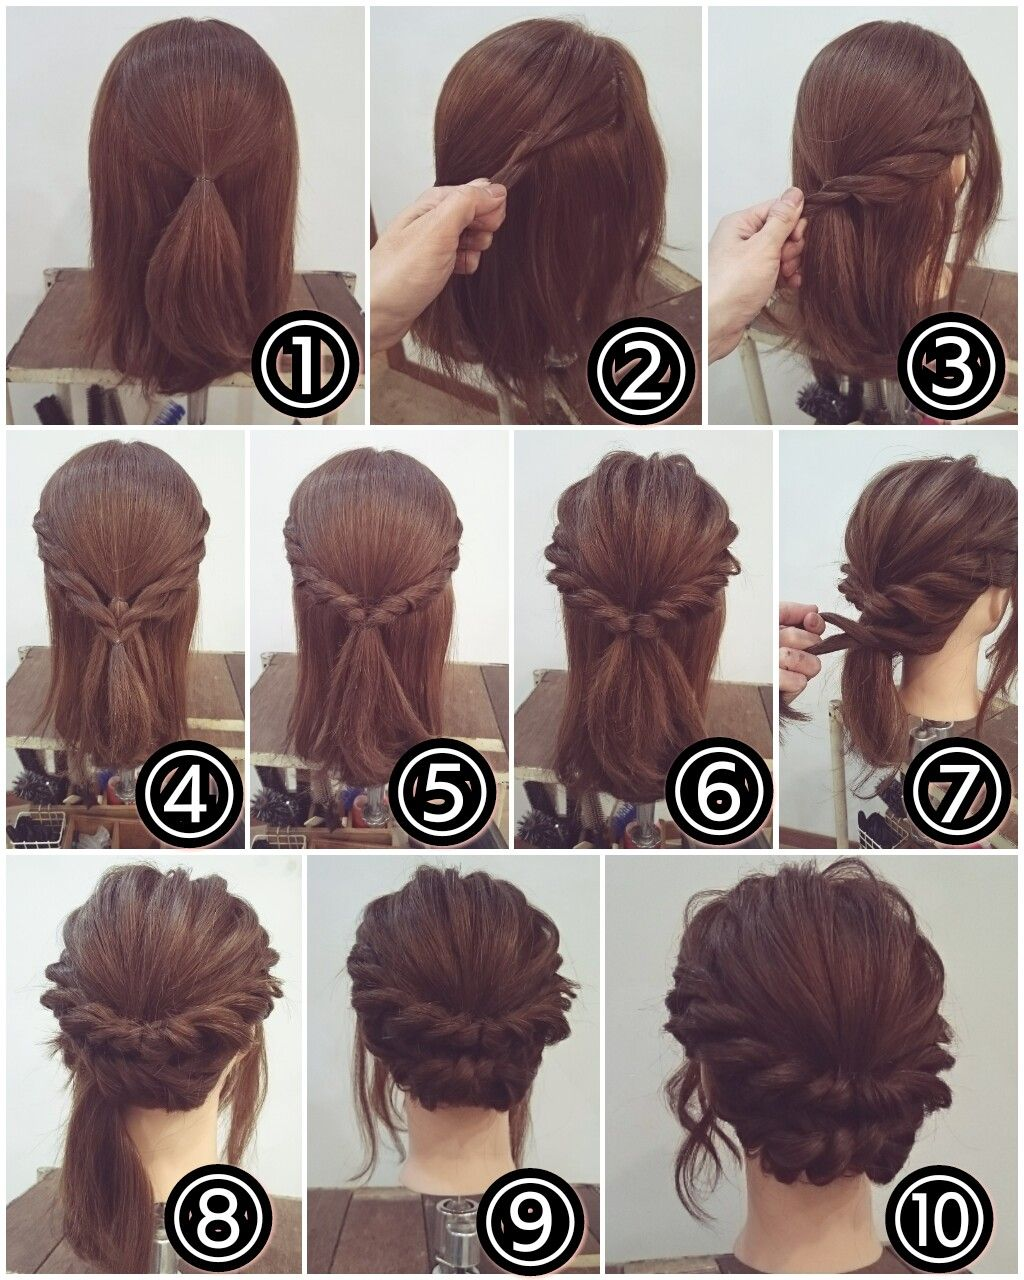 Peinados wedding hairs pinterest hair style long hair dos and